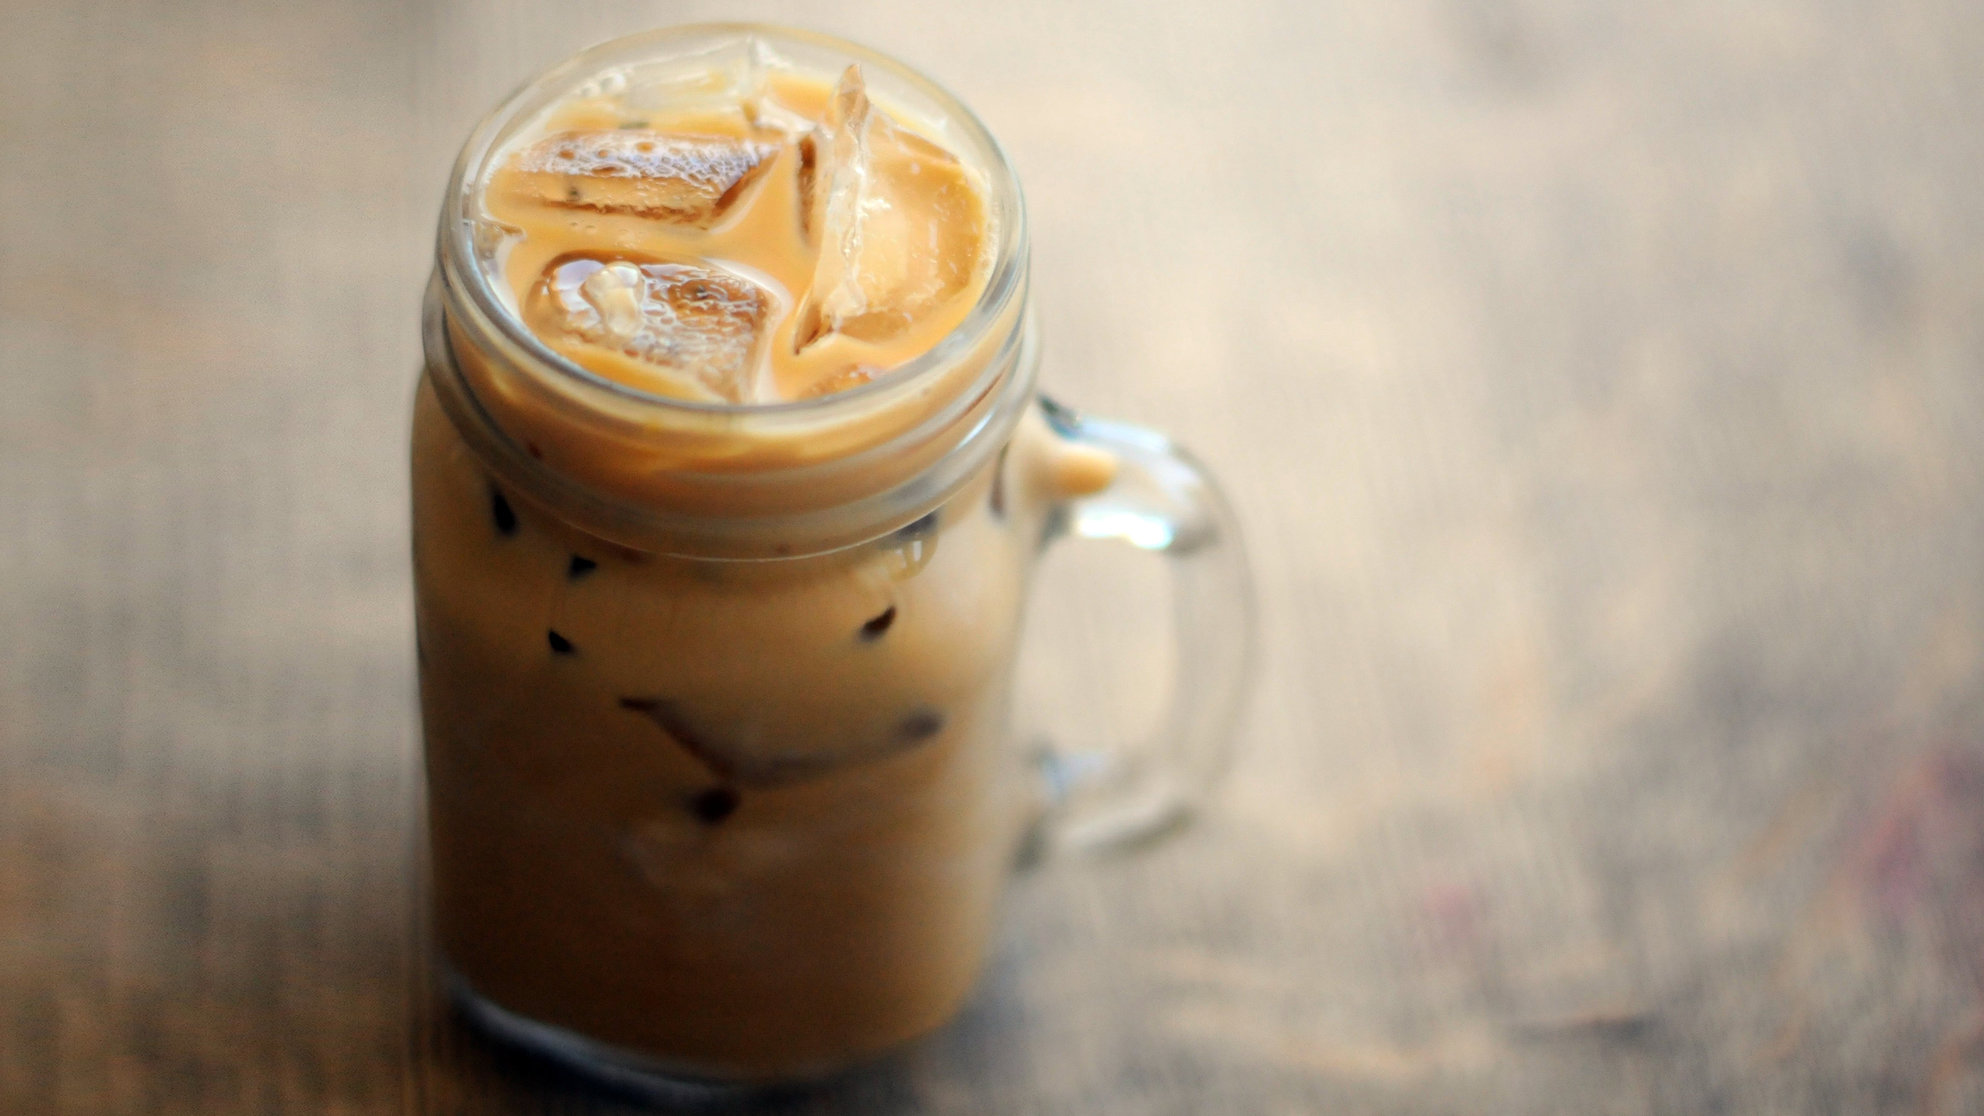 This Coffee Is 80 Times Stronger Than Espresso—How Risky Is That?